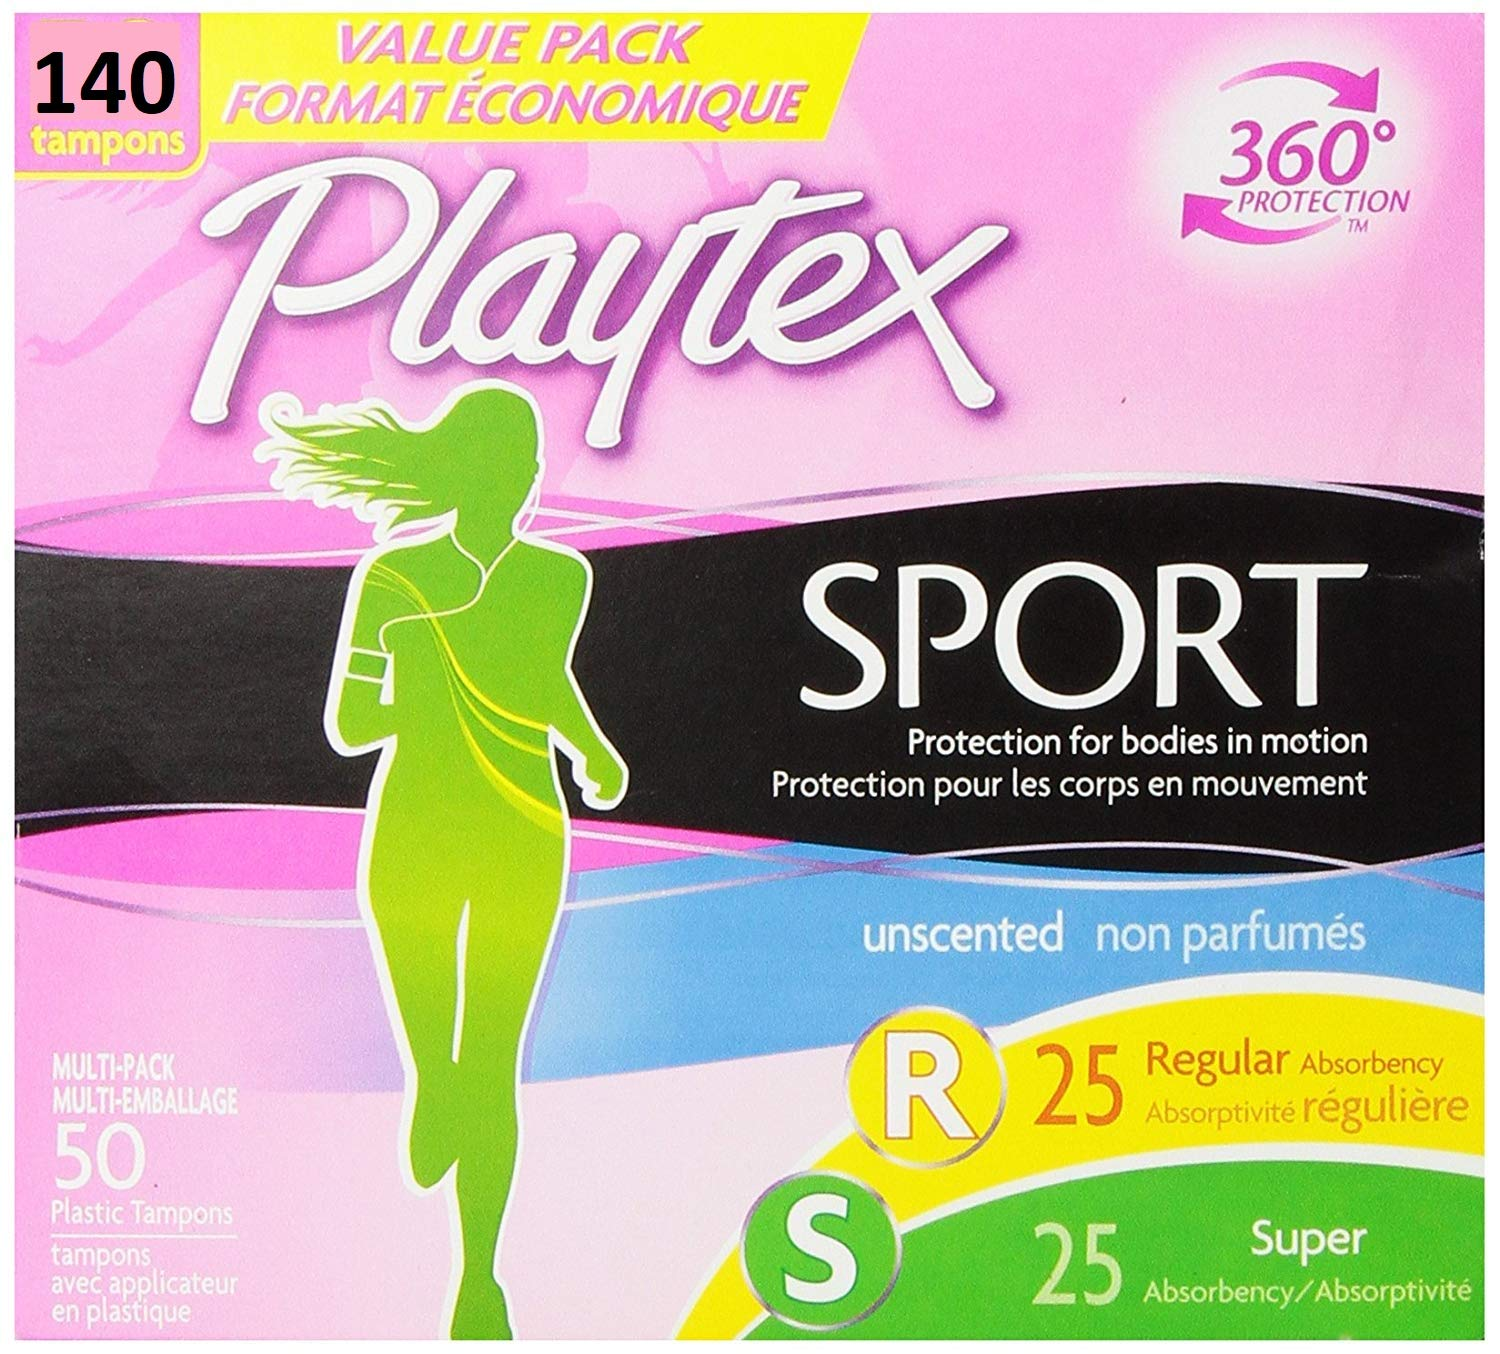 Playtex Sport Tampons with Flex-Fit Technology, Regular & Super Multi Pack, Unscented - 140 Count (140 Count)